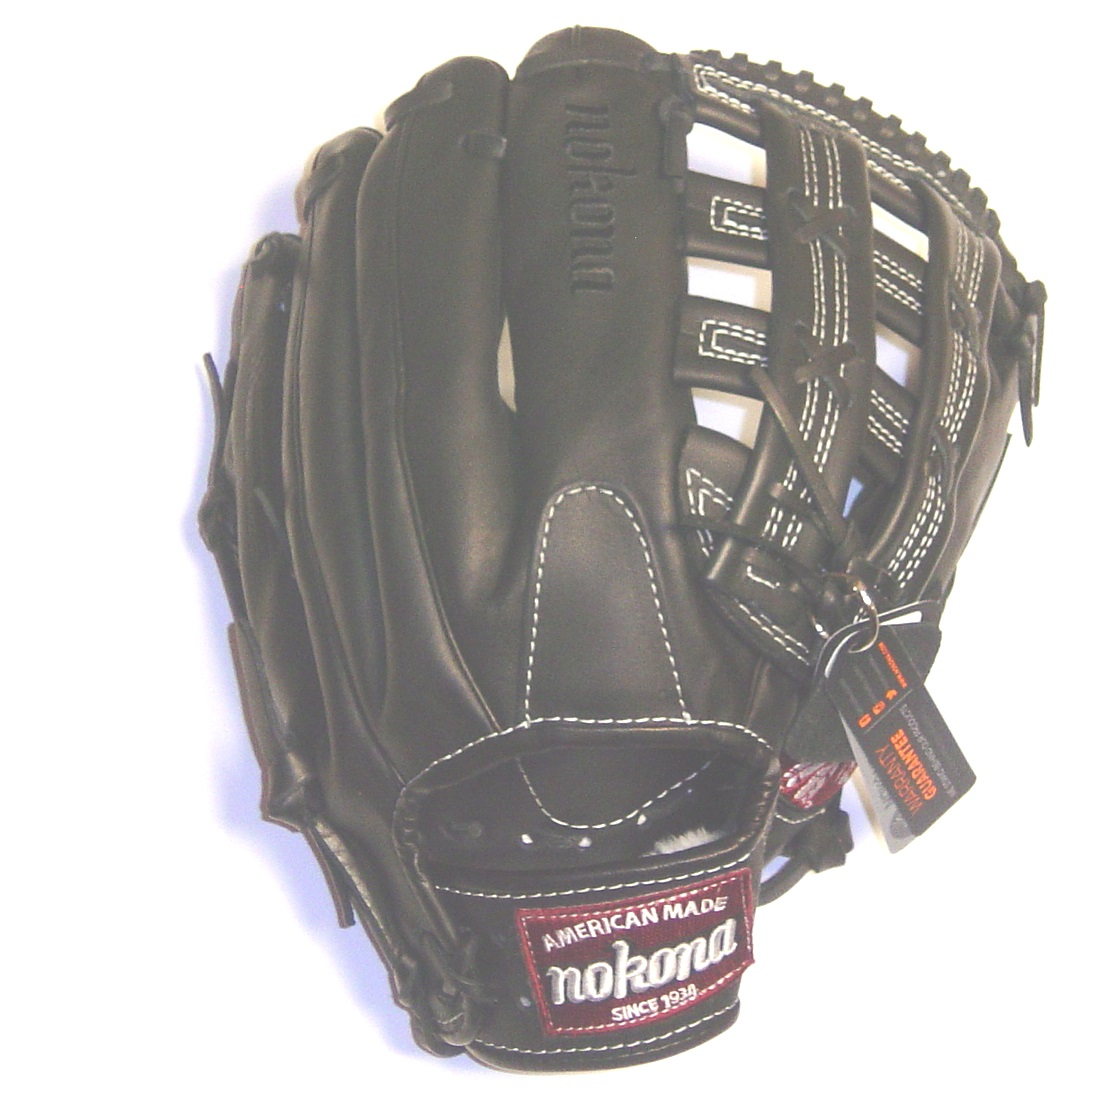 nokona-steerhide-pro-l-1300h-baseball-glove-13-inch-right-hand-throw L-1300H=BLK-RightHandThrow Nokona 808808891338 <p>Nokona professional steerhide Baseball Glove with H web and conventional open